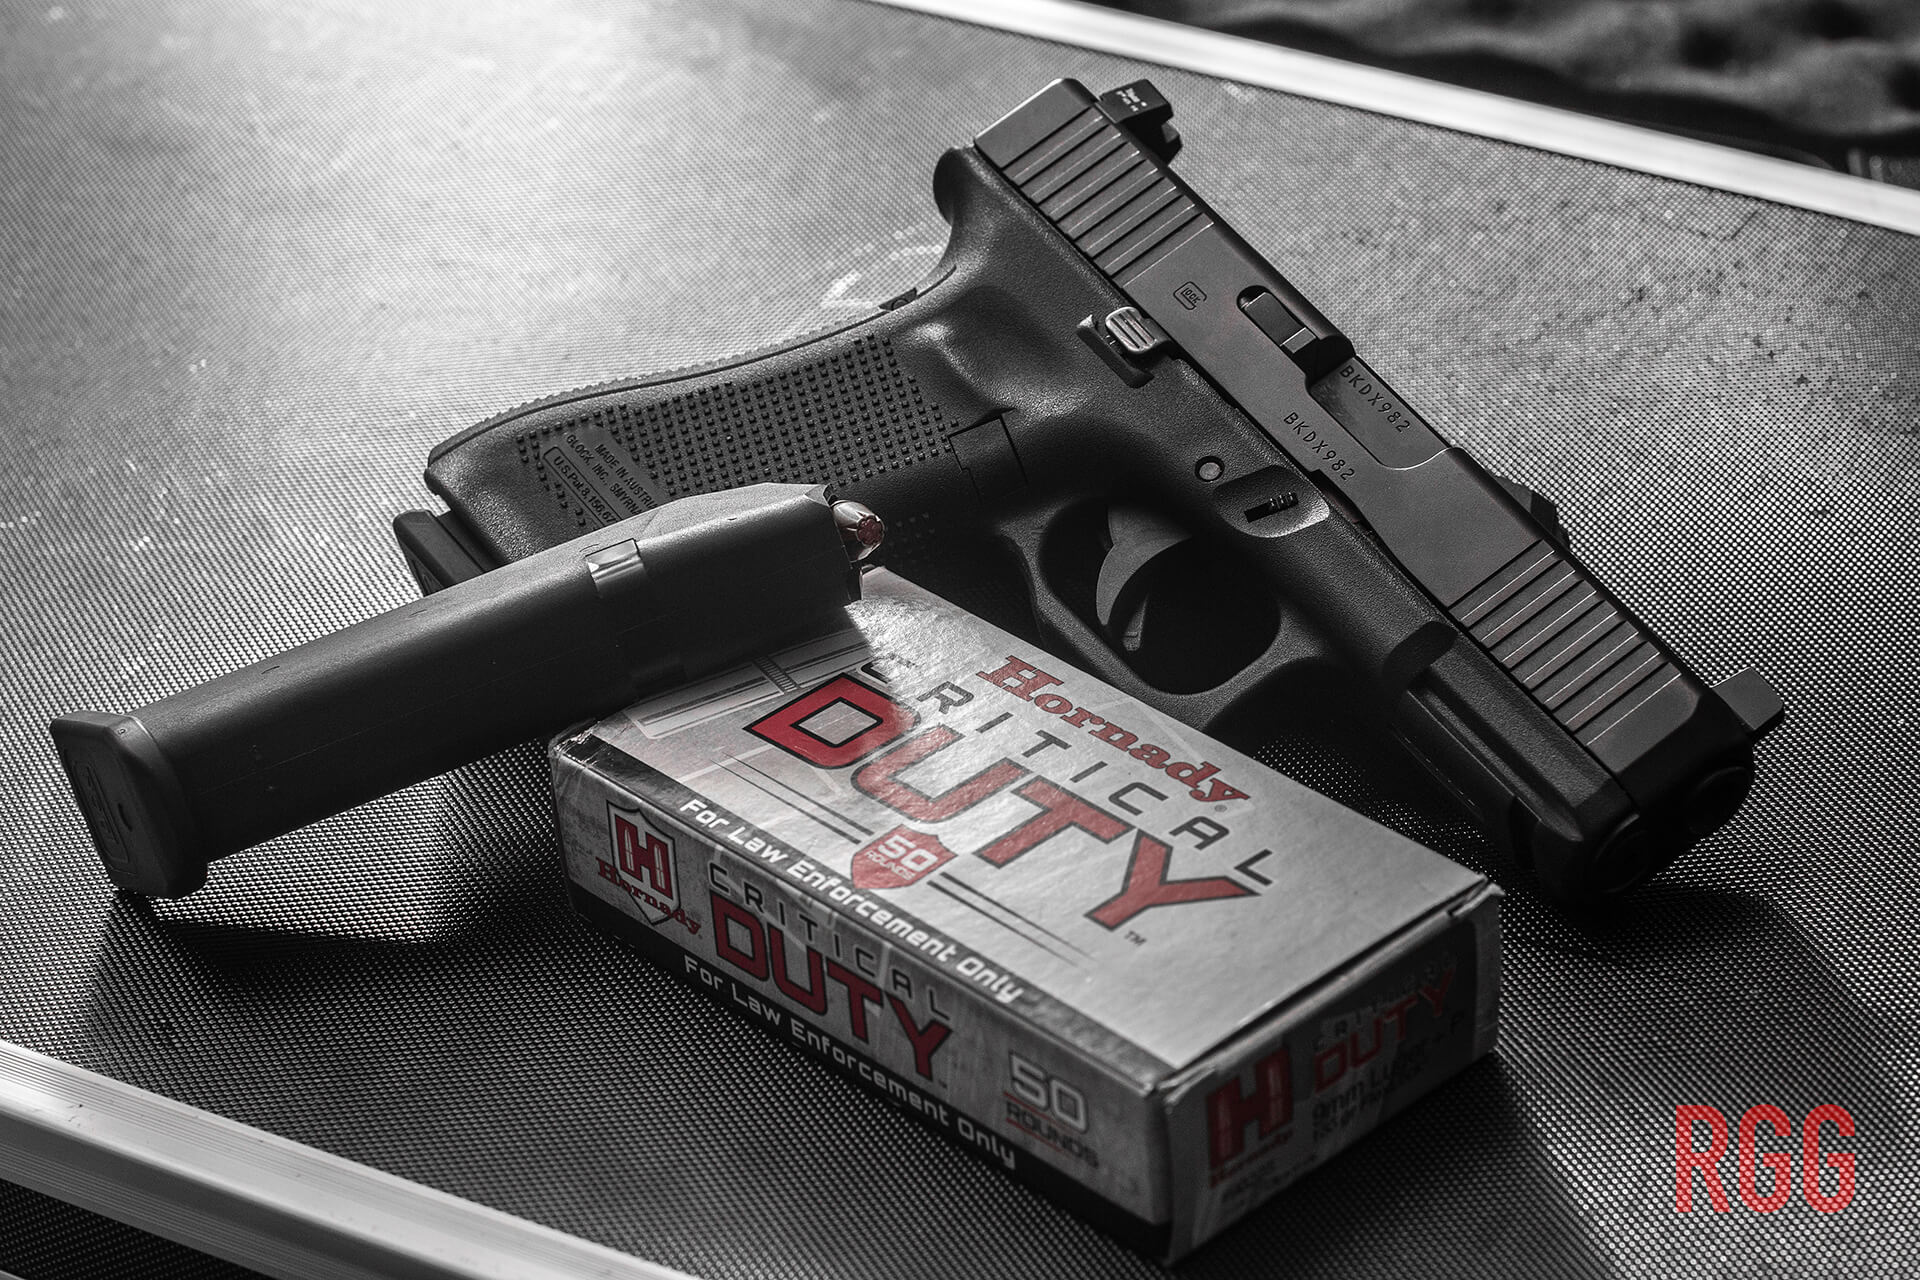 The GLOCK 45 9mm pistol is a winner whethere you are experienced or a beginner